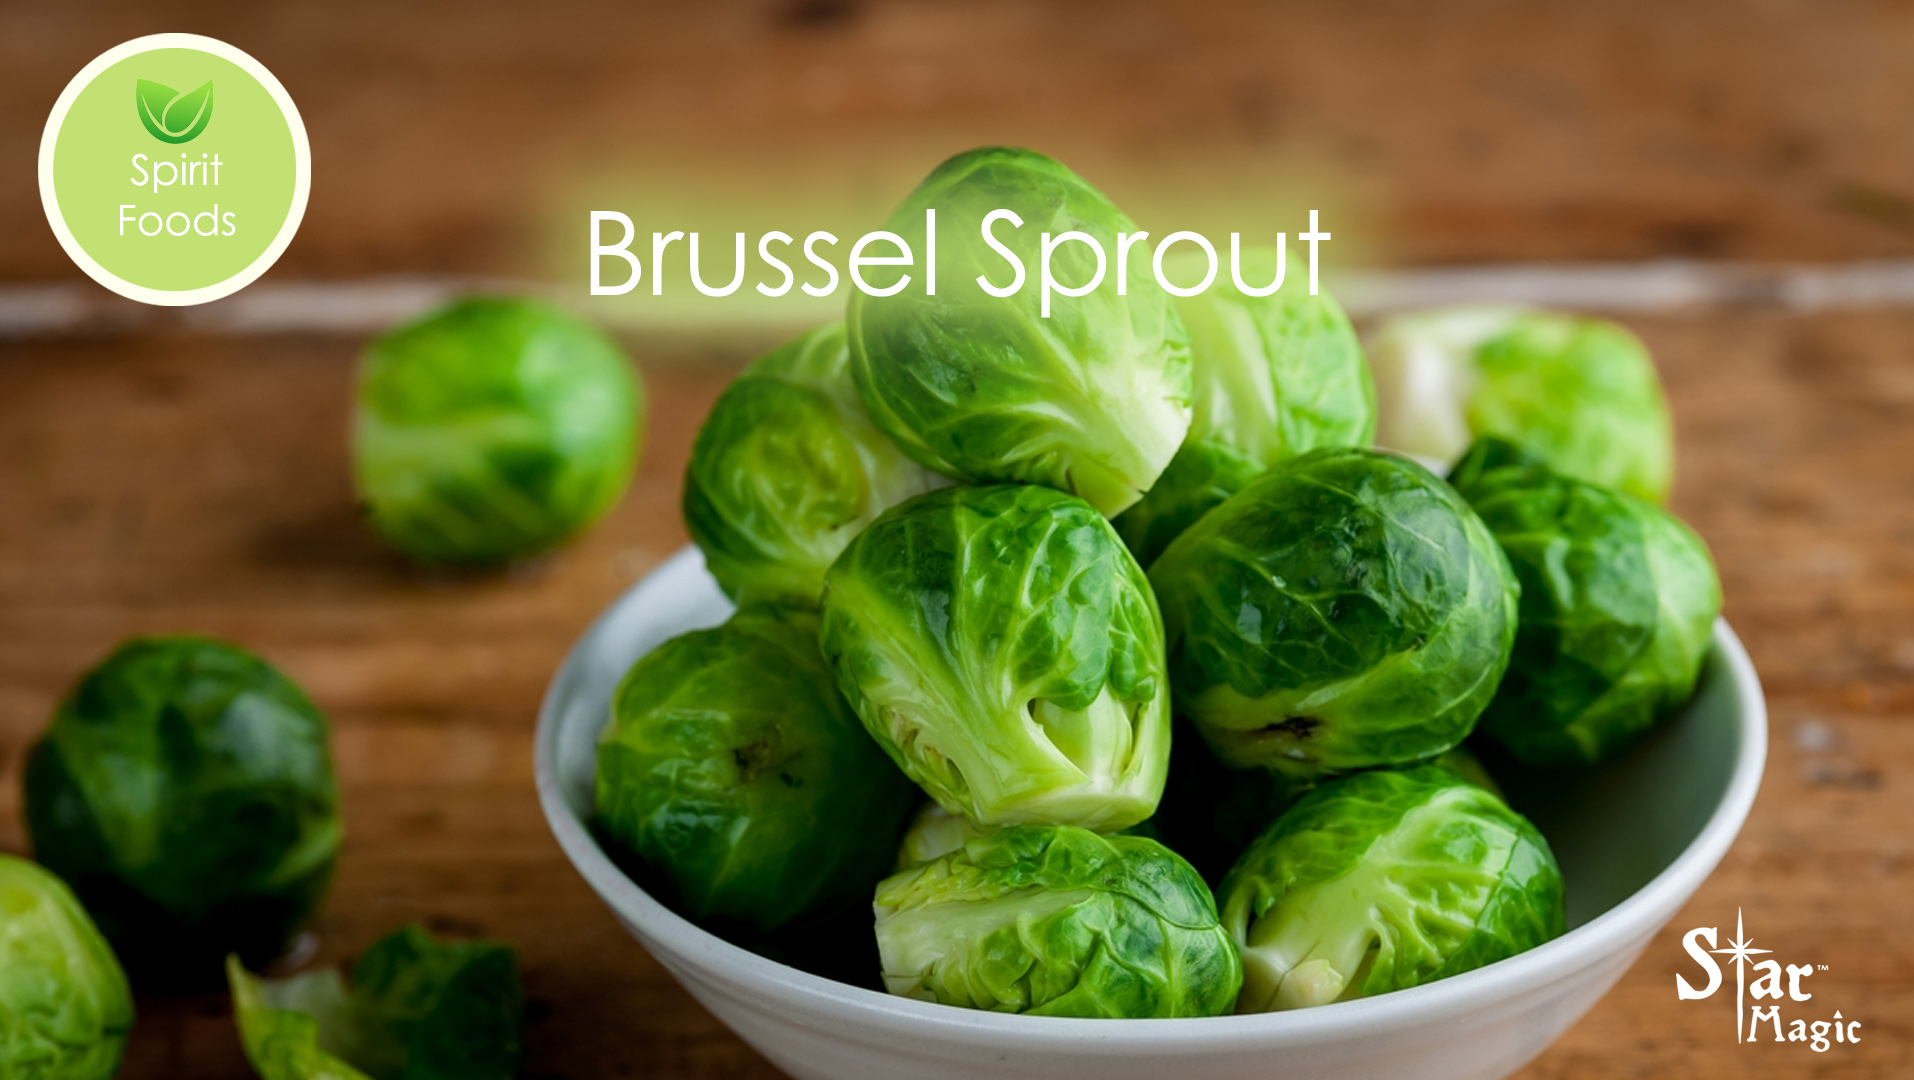 Spirit Food – Brussel Sprouts